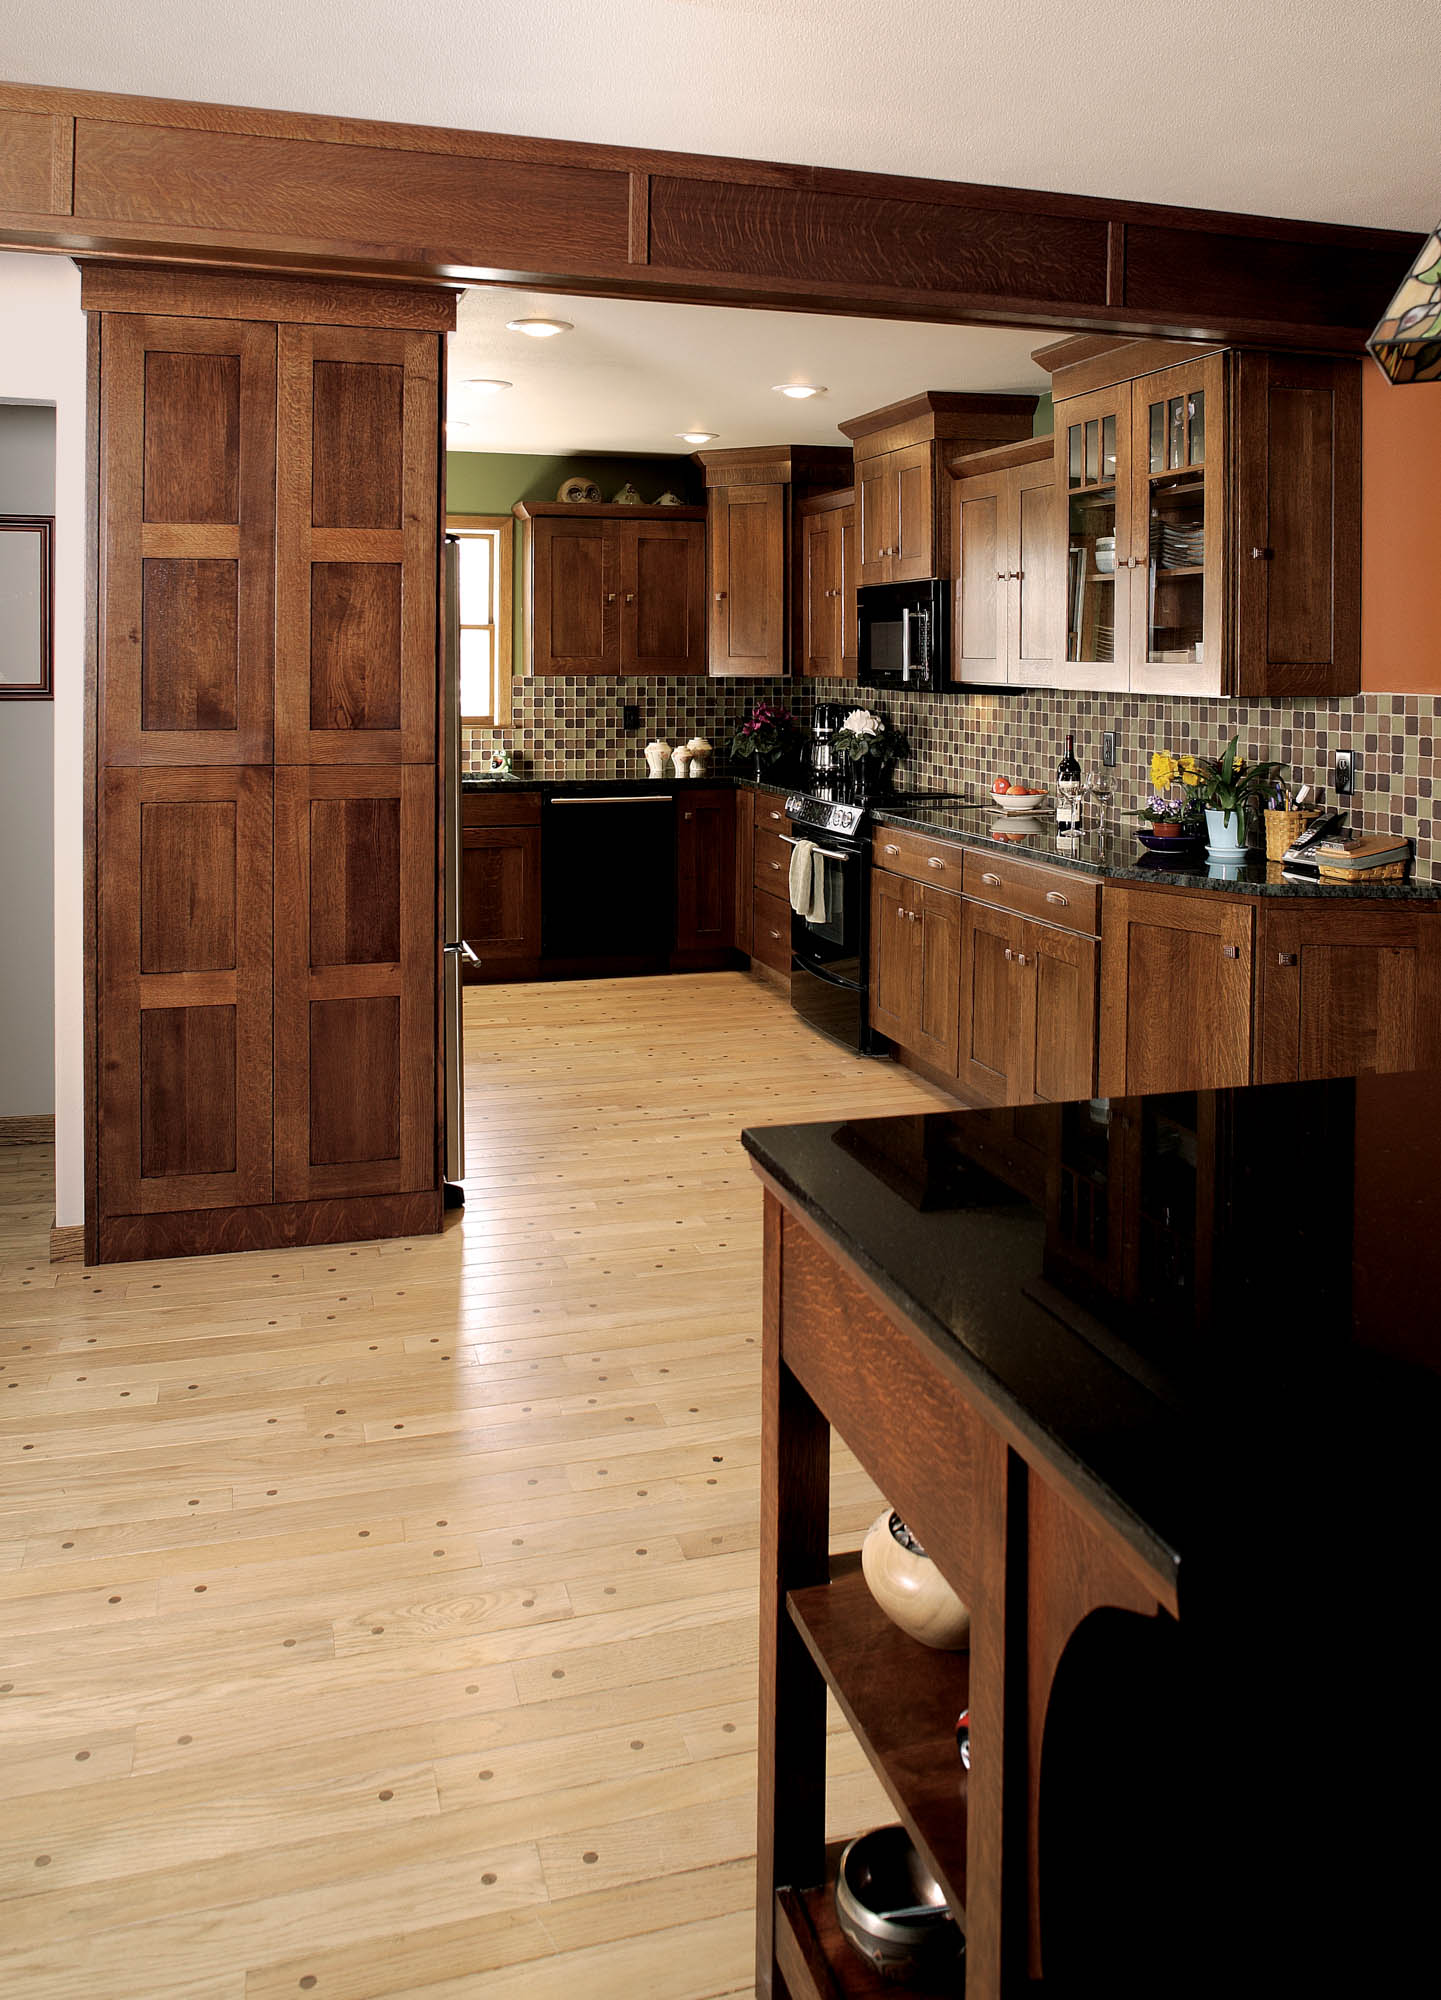 Stained kitchen cabinets in Autumn with Ebony Glaze by Showplace Cabinetry - view 2